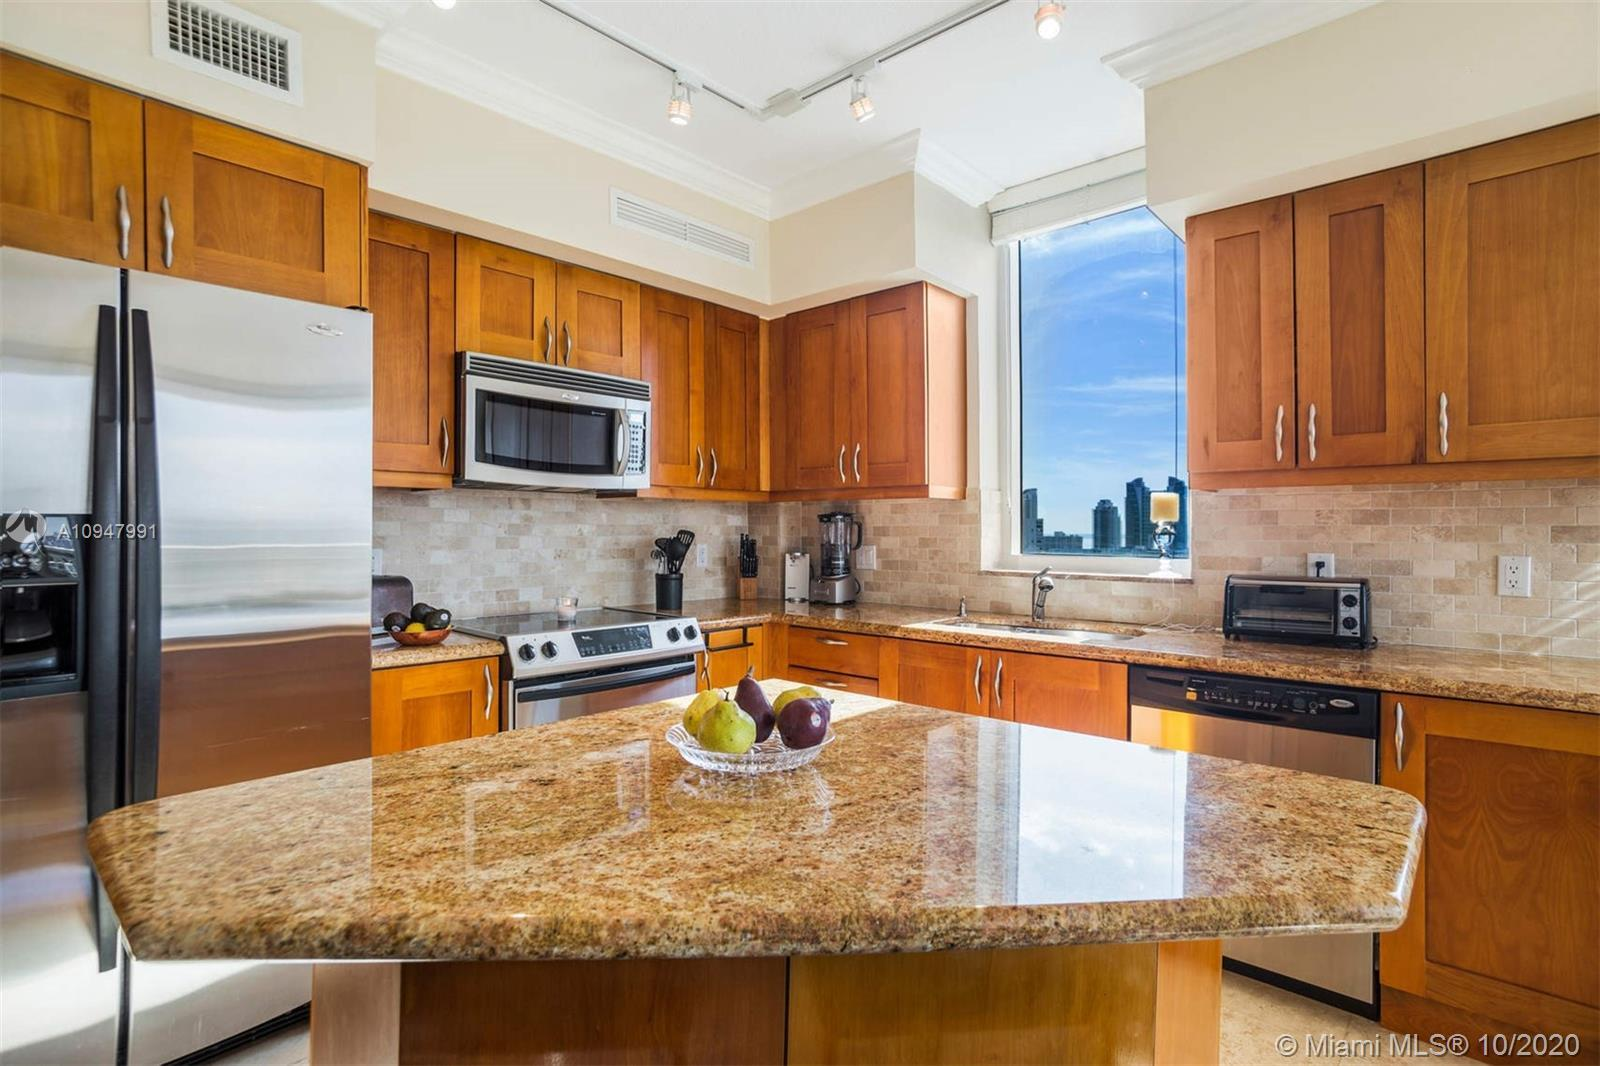 Welcome to your new home! This incredible corner unit features amazing unobstructed views to the Sou